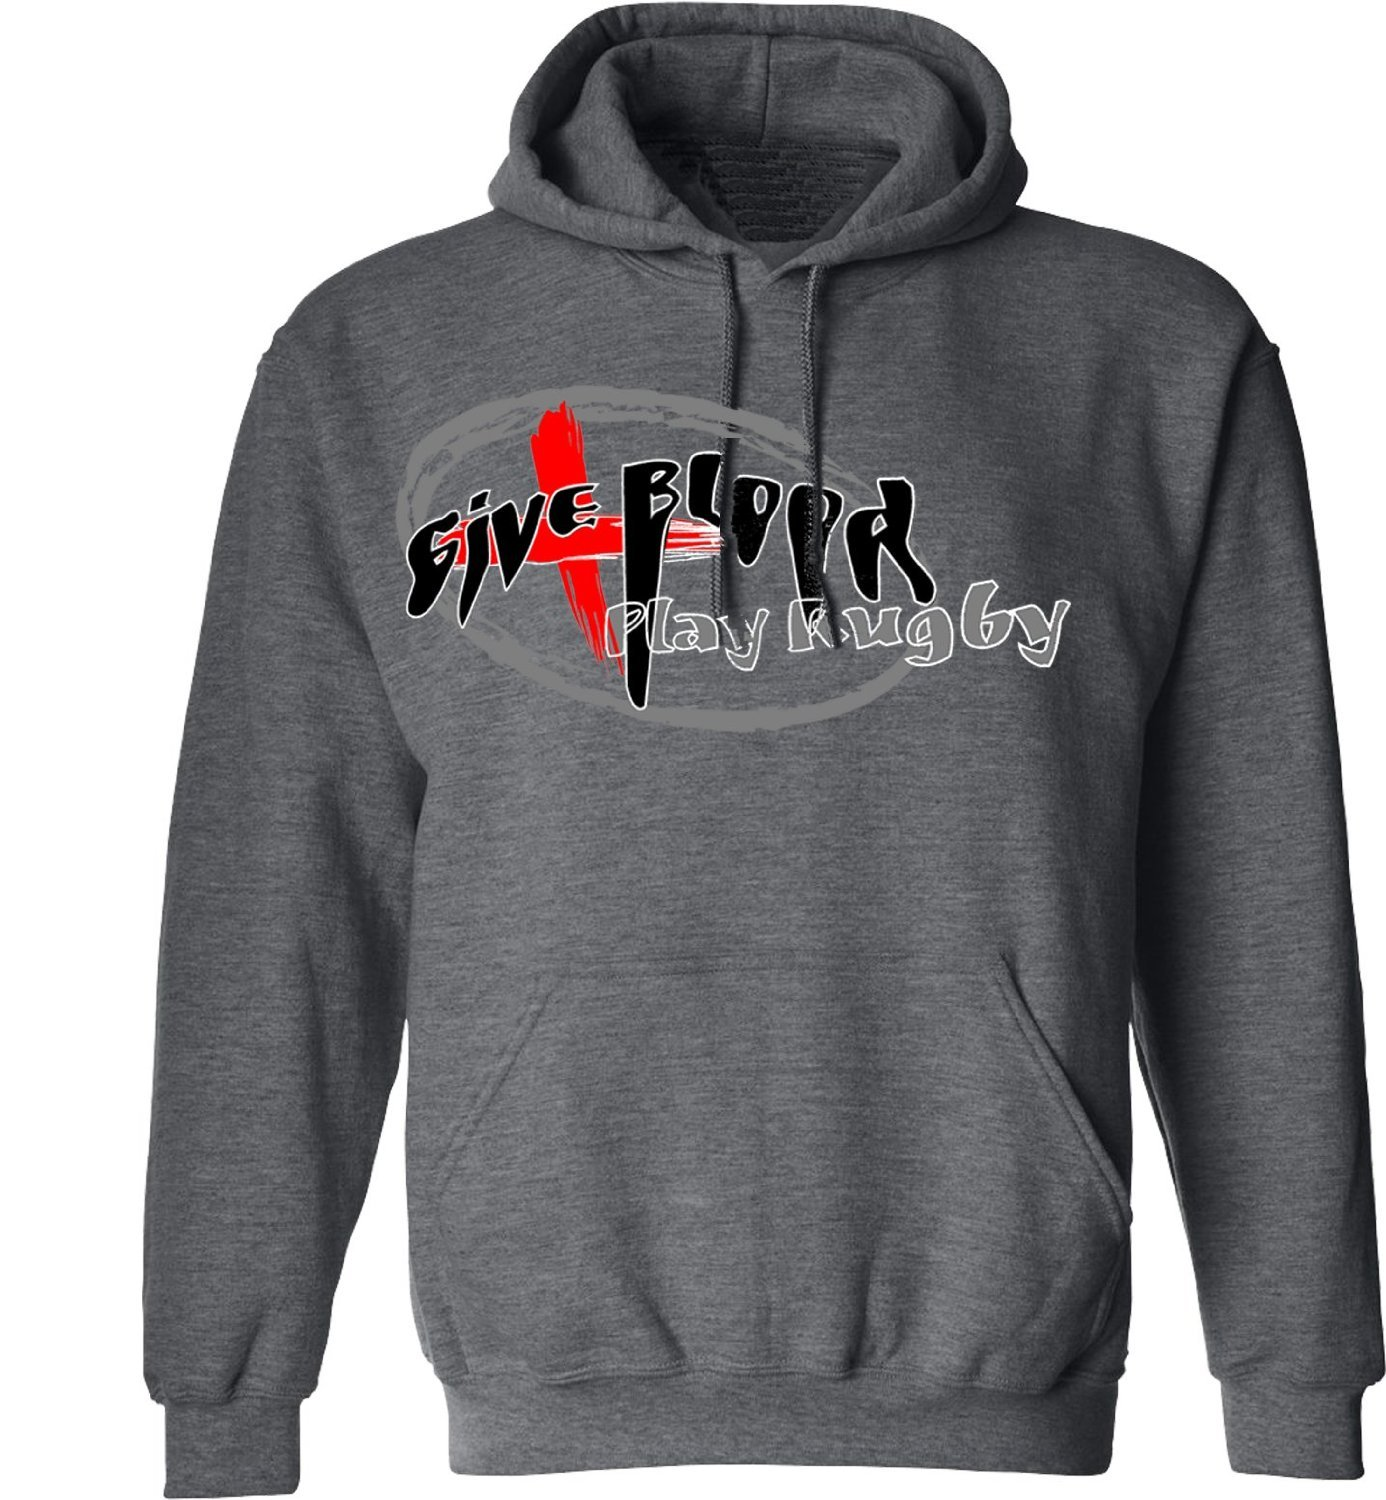 Give blood play rugby Hoody B00HGWFT9C  Large